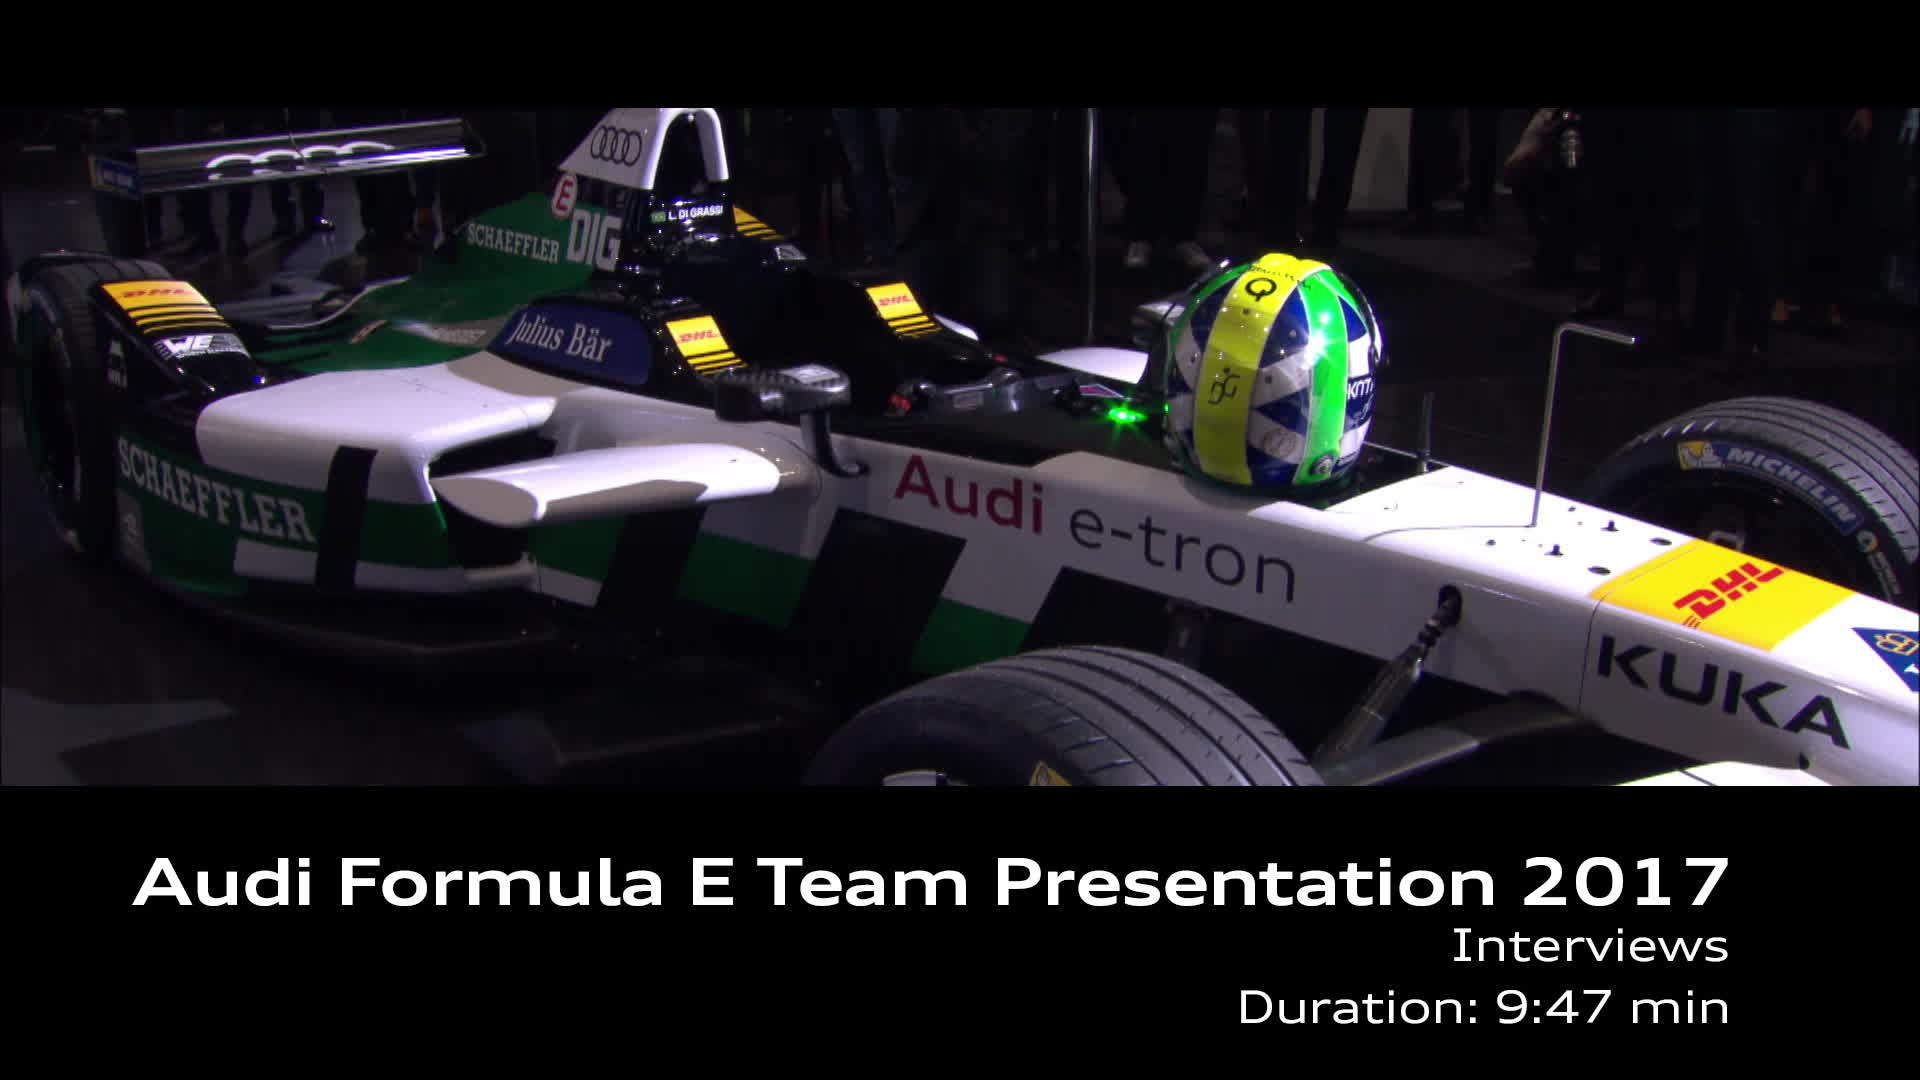 Audi Formula E Presentation 2017 Interviews